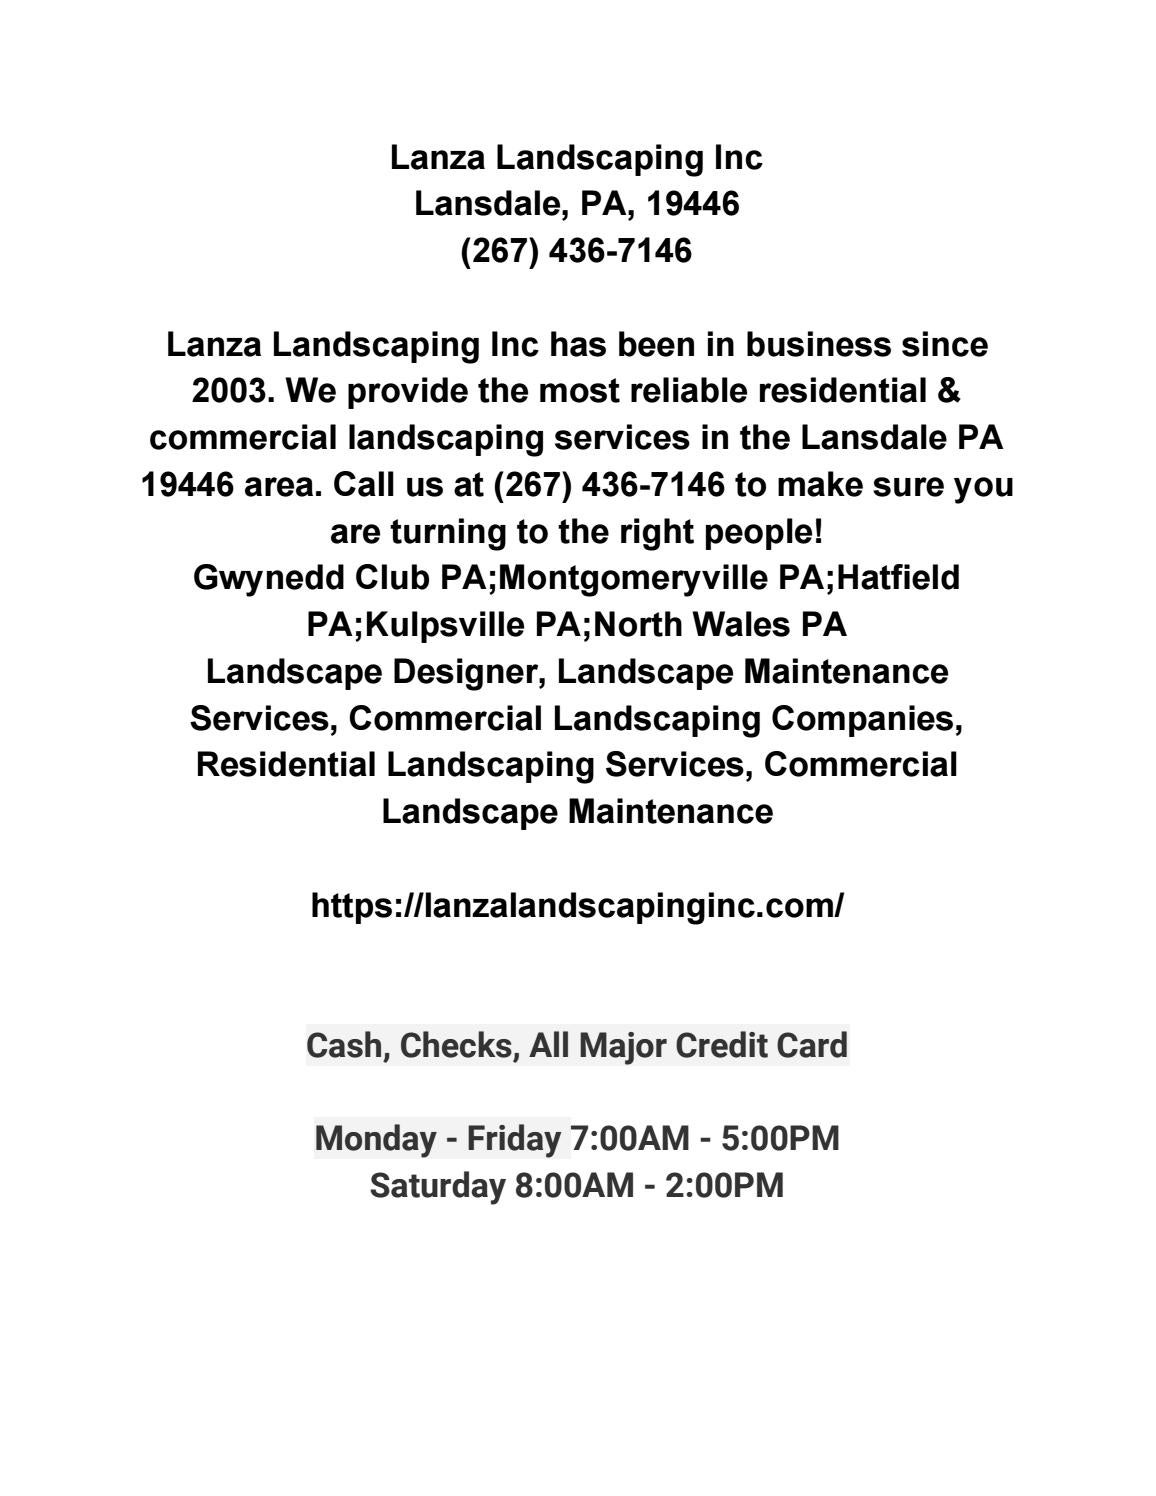 Lanza Landscaping Inc By Lanza Landscaping Inc Issuu